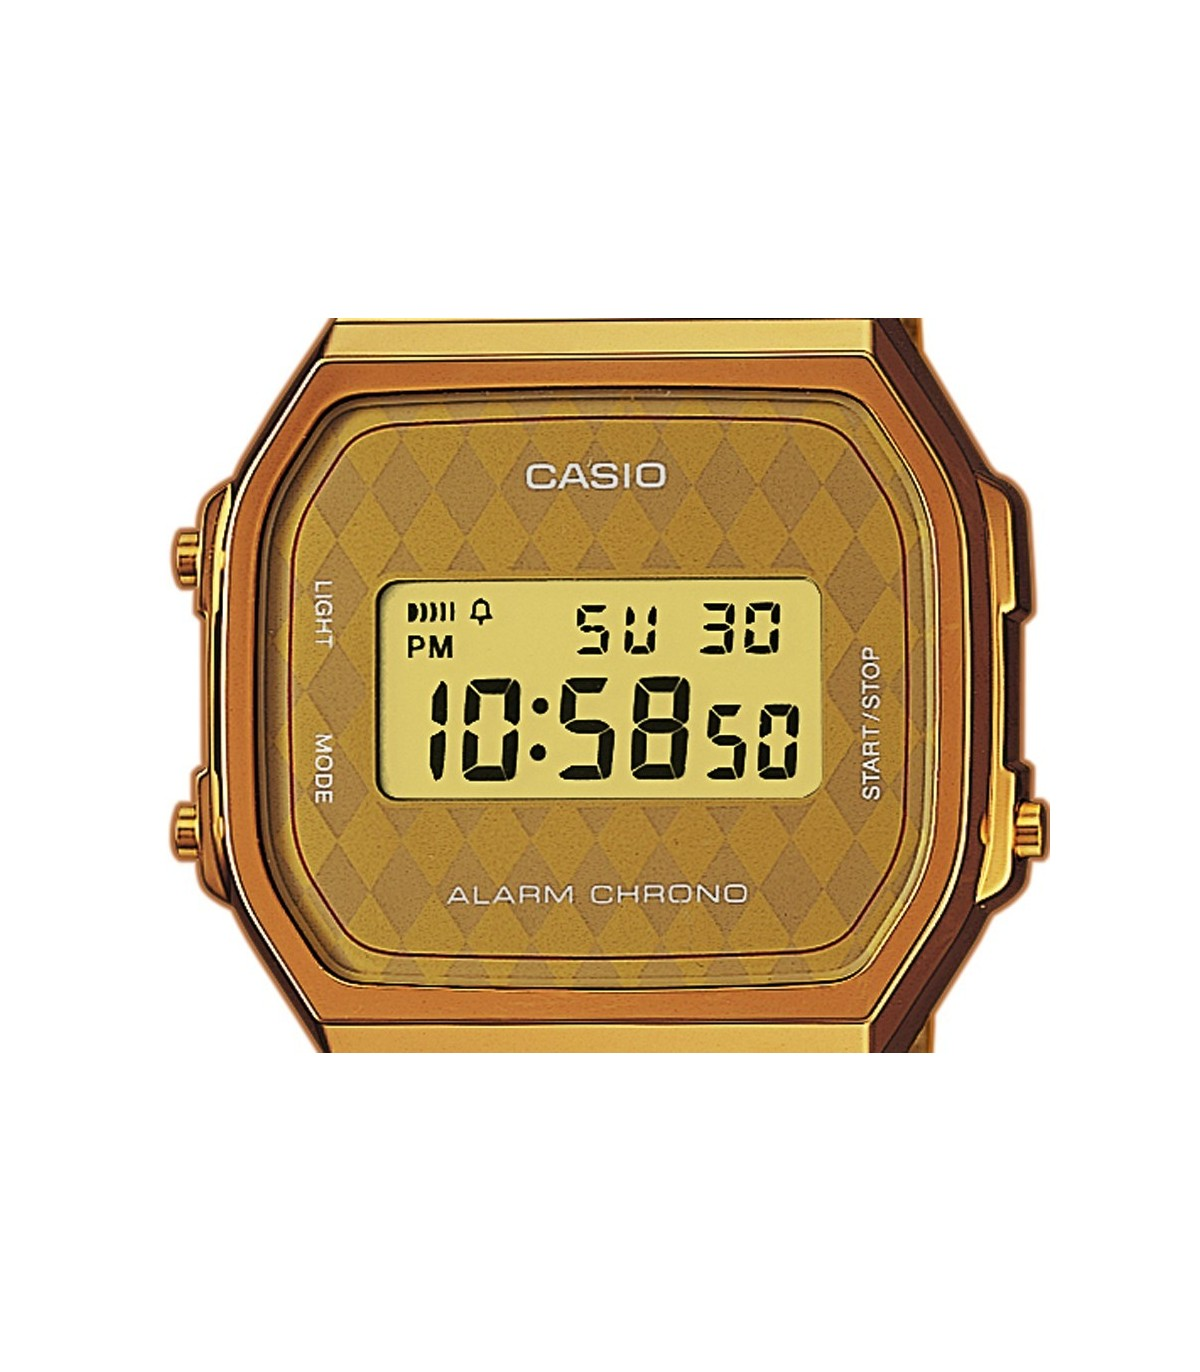 A168wg Retro 9bw Collection Reloj Casio rCWdBoxe